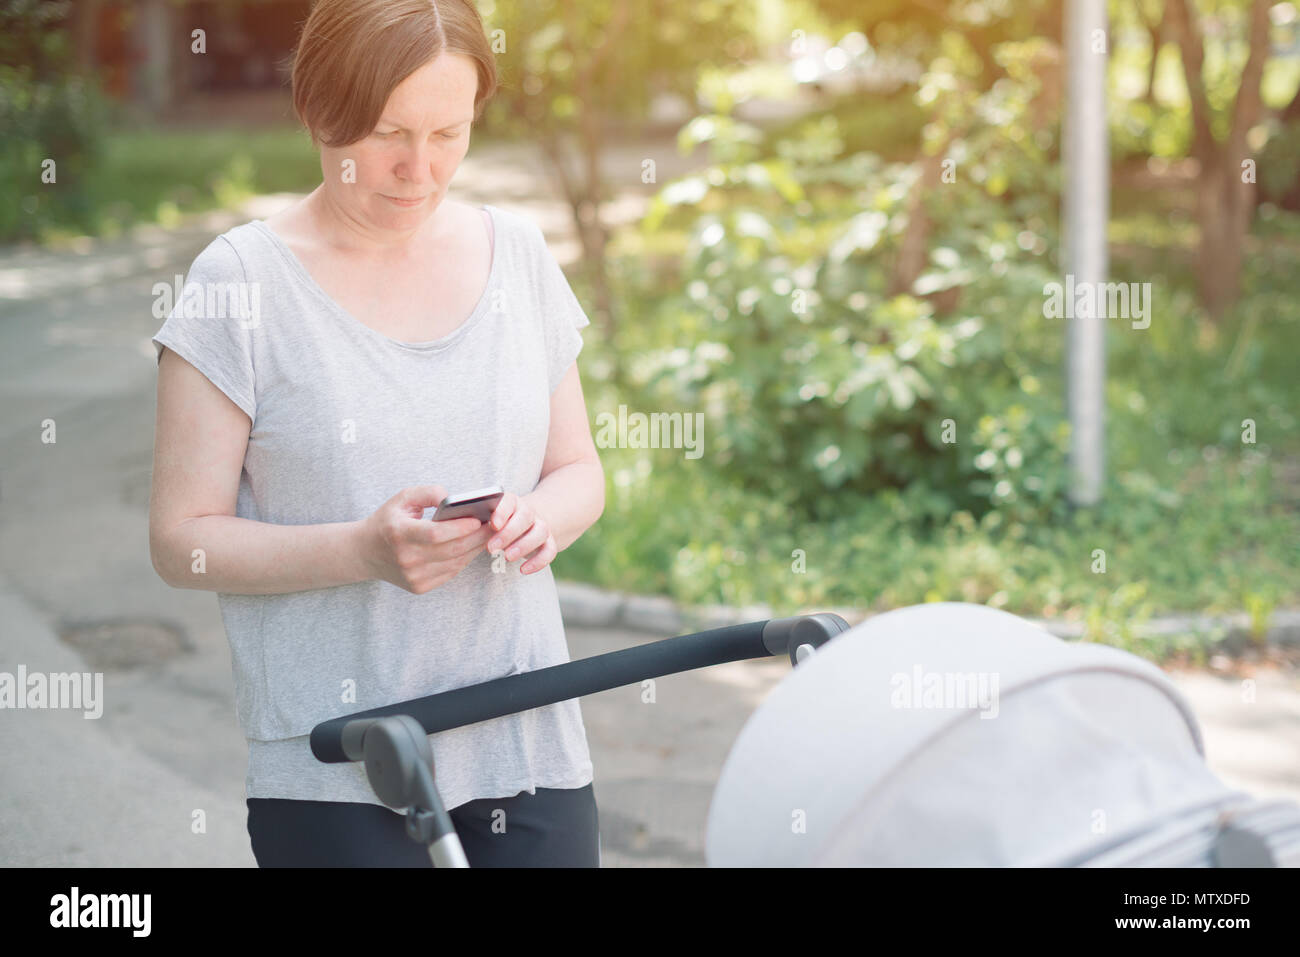 Mother dialing phone number while pushing baby stroller on the street in casual sport clothing - Stock Image